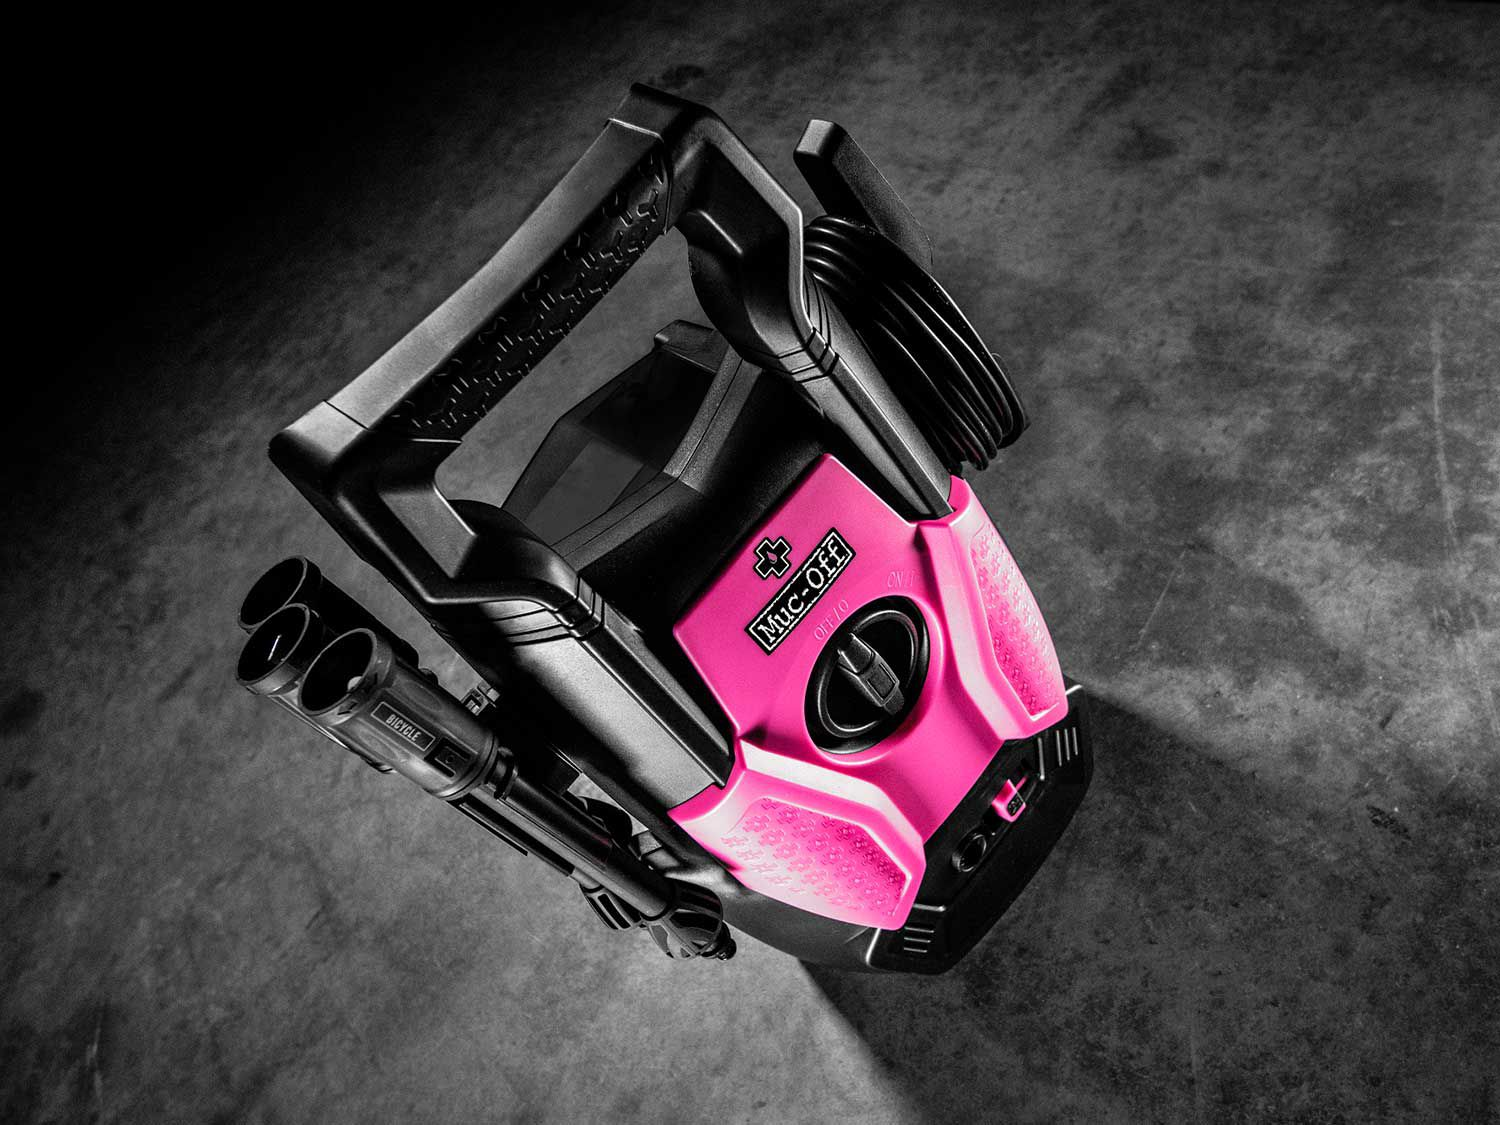 Small, portable, built to take a beating. The Muc-Off Pressure Washer is made to make cleaning your bike easier, wherever you are.